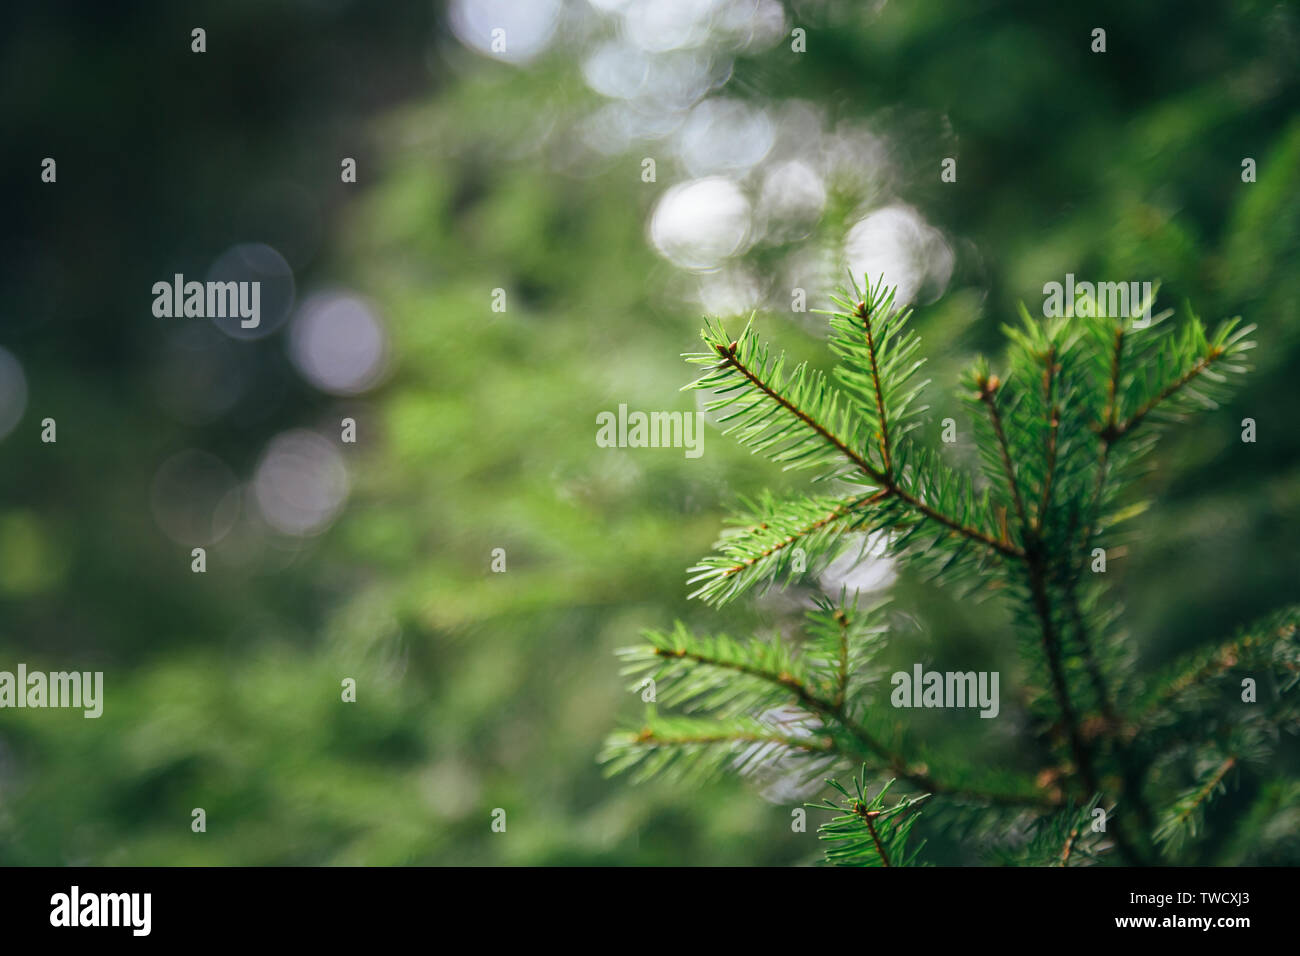 Close up of small young fir tree needles with forest at background. Spring blossom background. Image for agriculture, SPA, medical industries and dive - Stock Image